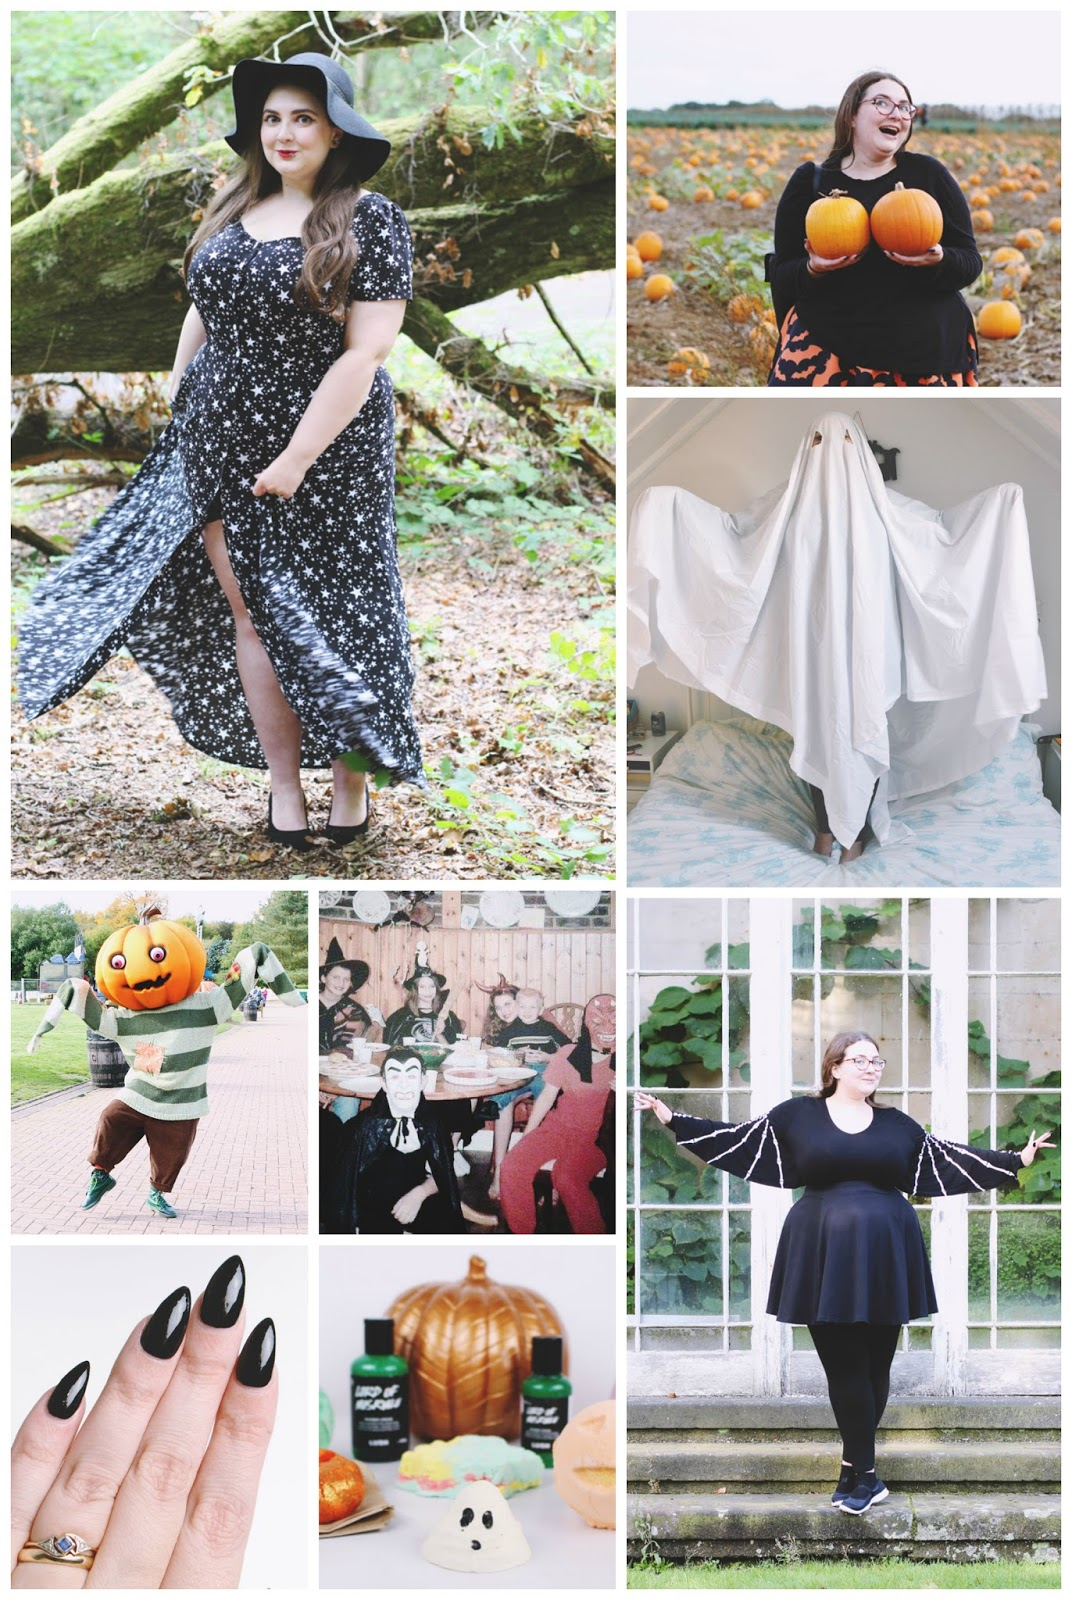 blogger crush, blog recommendations, best blogs, best halloween blogs, halloween blog recommendations, Becky Bedbug